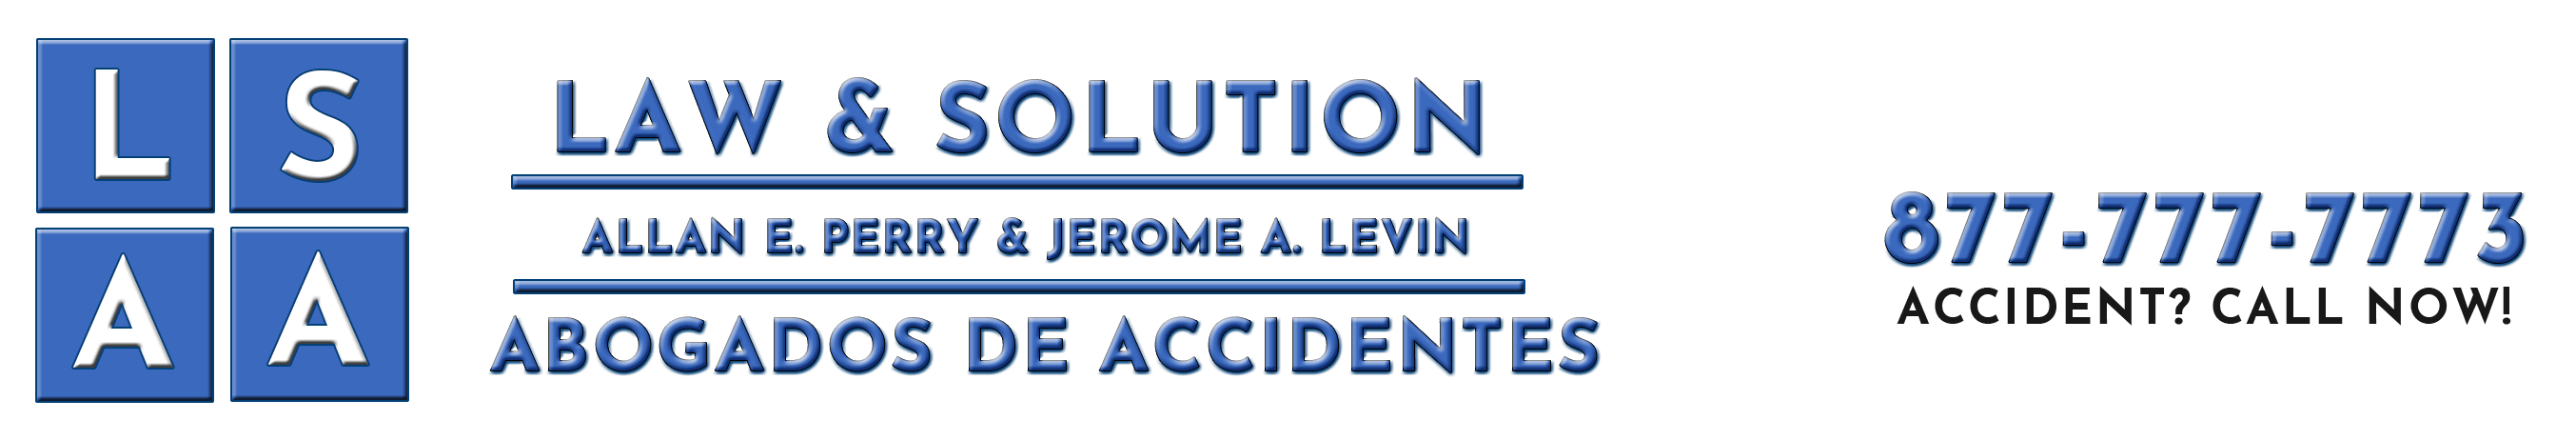 Law & Solution - Abogados De Accidentes en Anaheim, CA | 877-777-7773